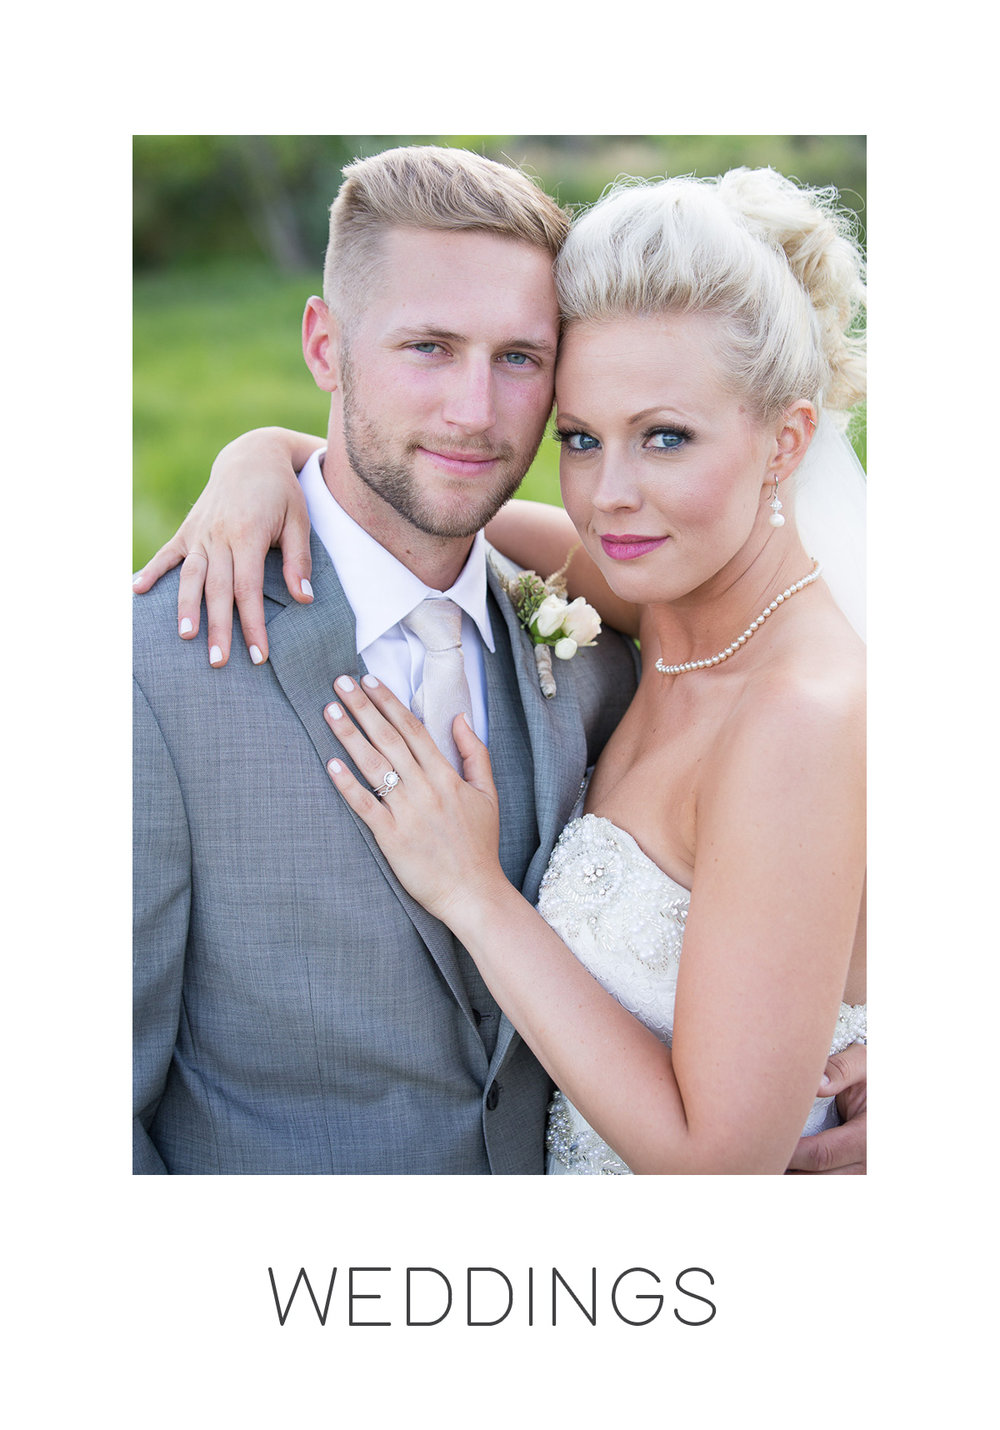 gallerybutton_wedding2.jpg